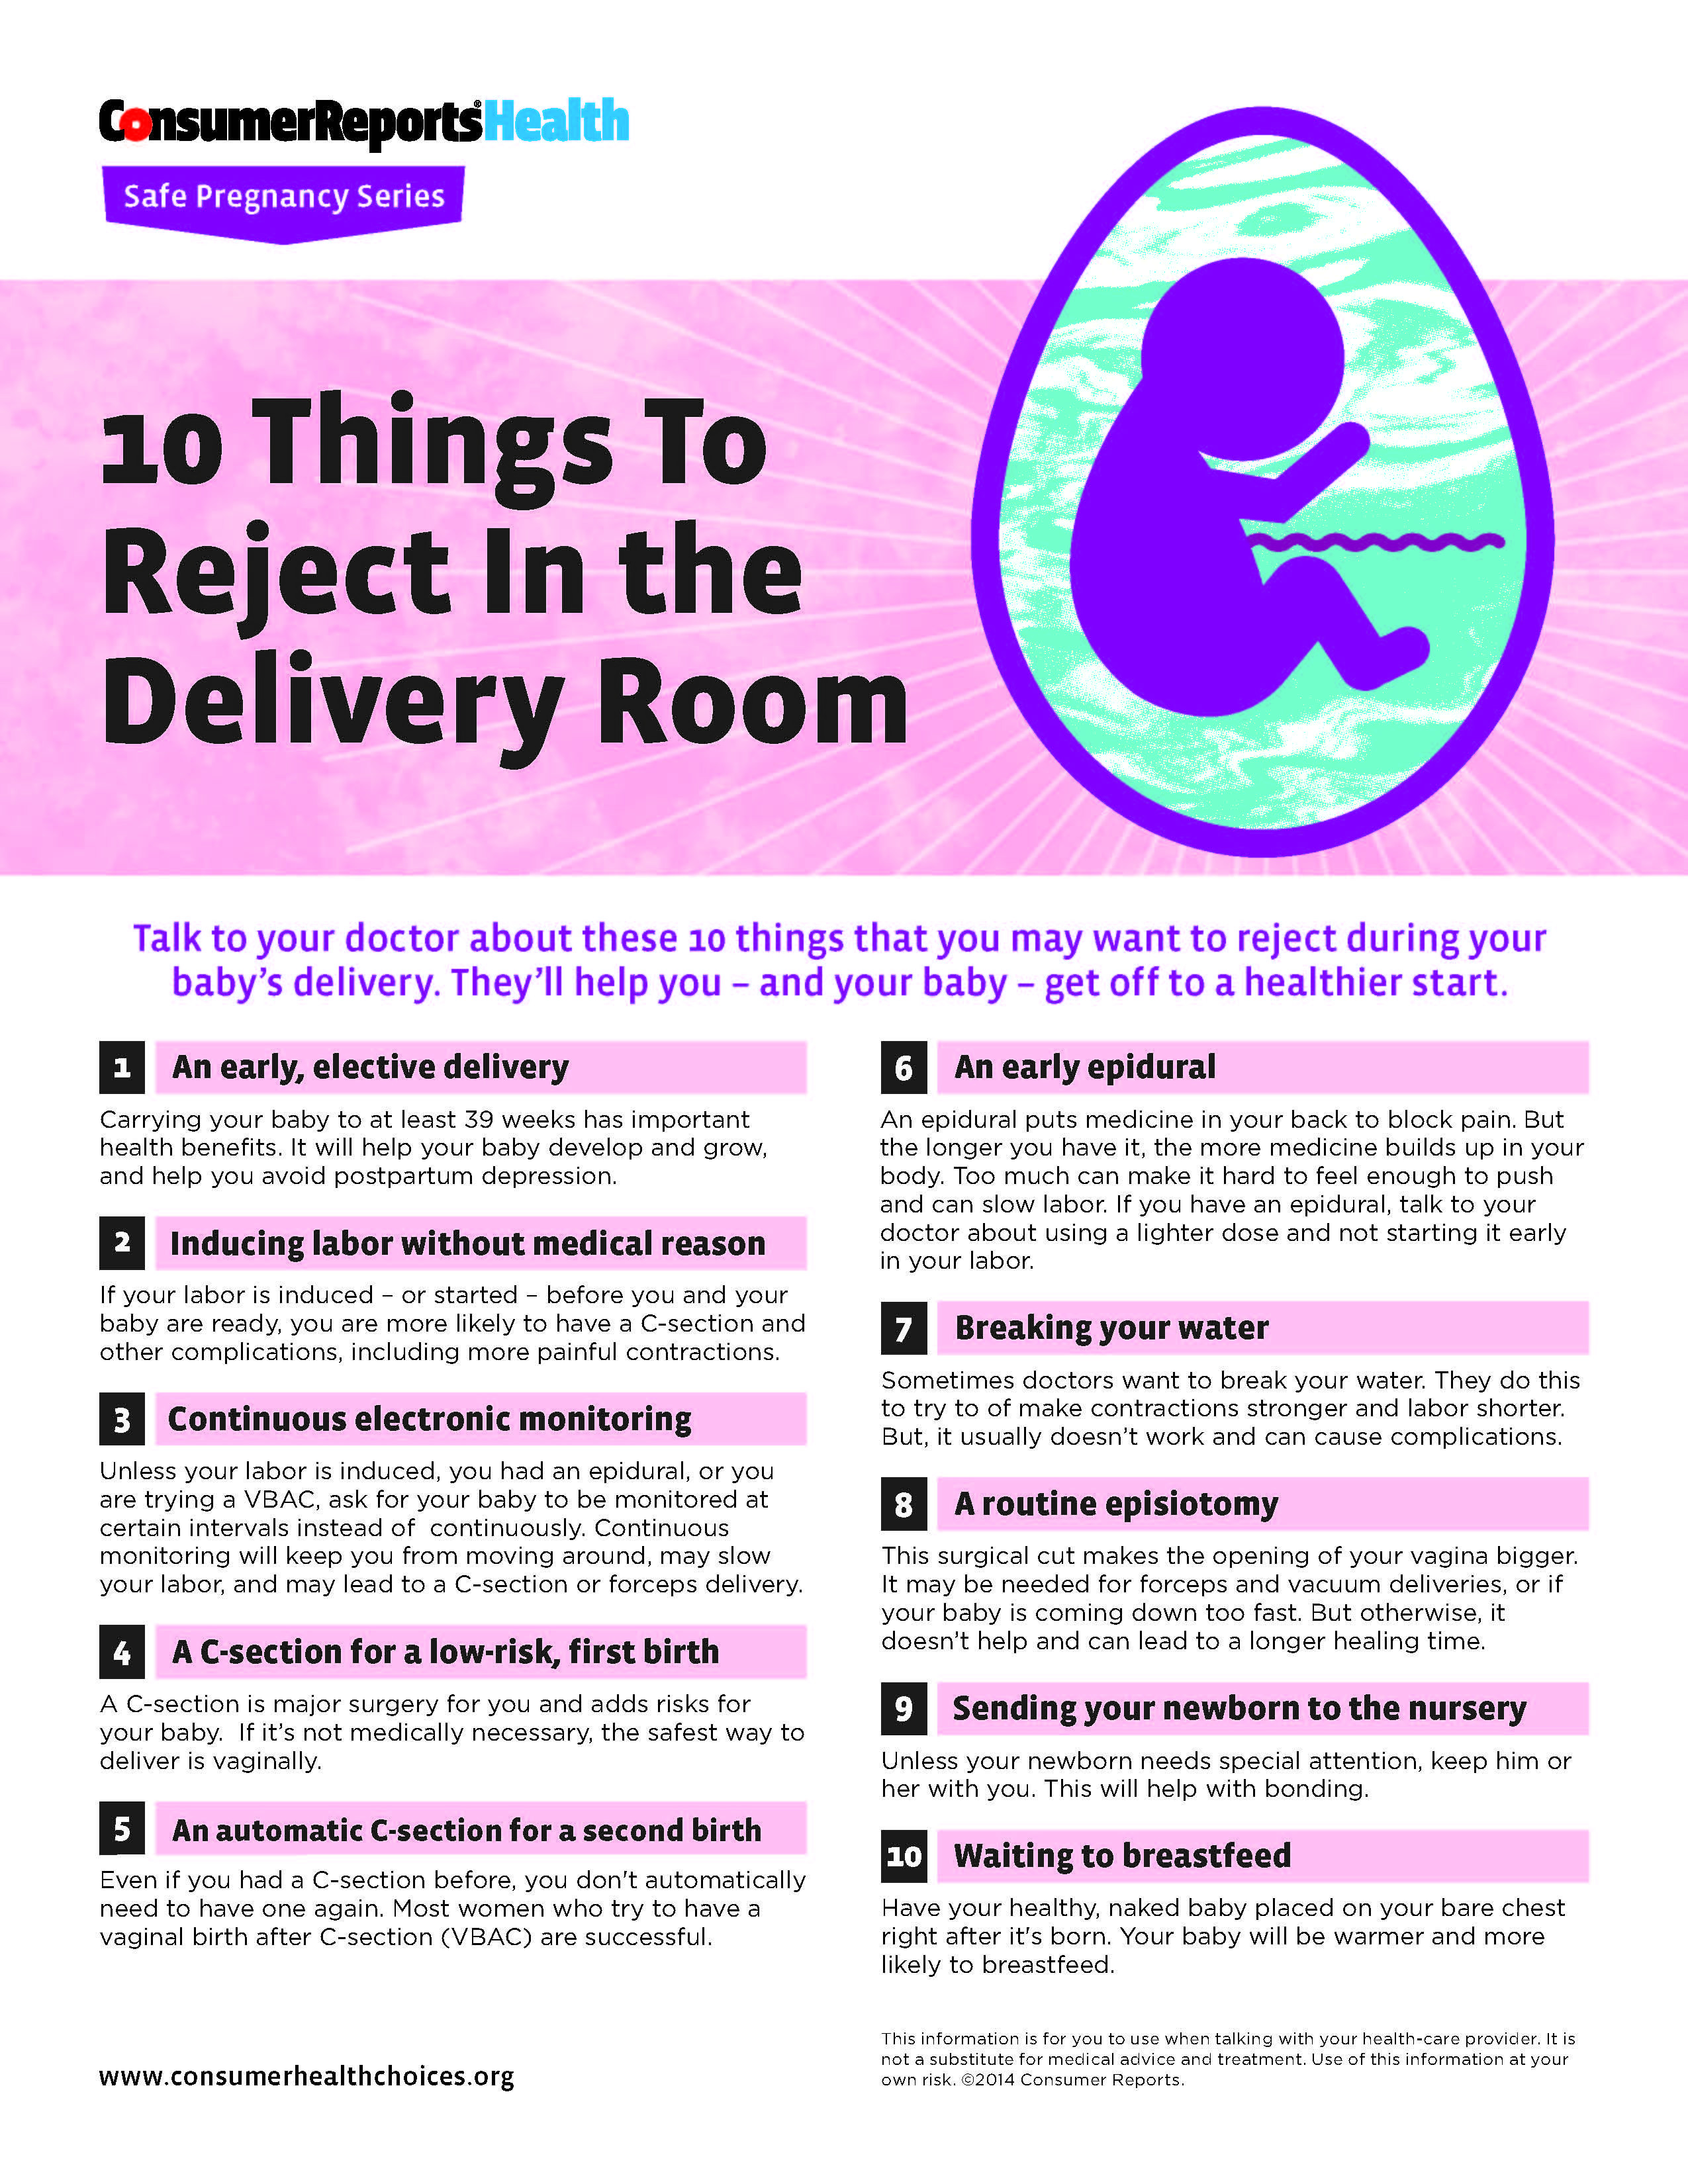 10 Things To Reject In the Delivery Room